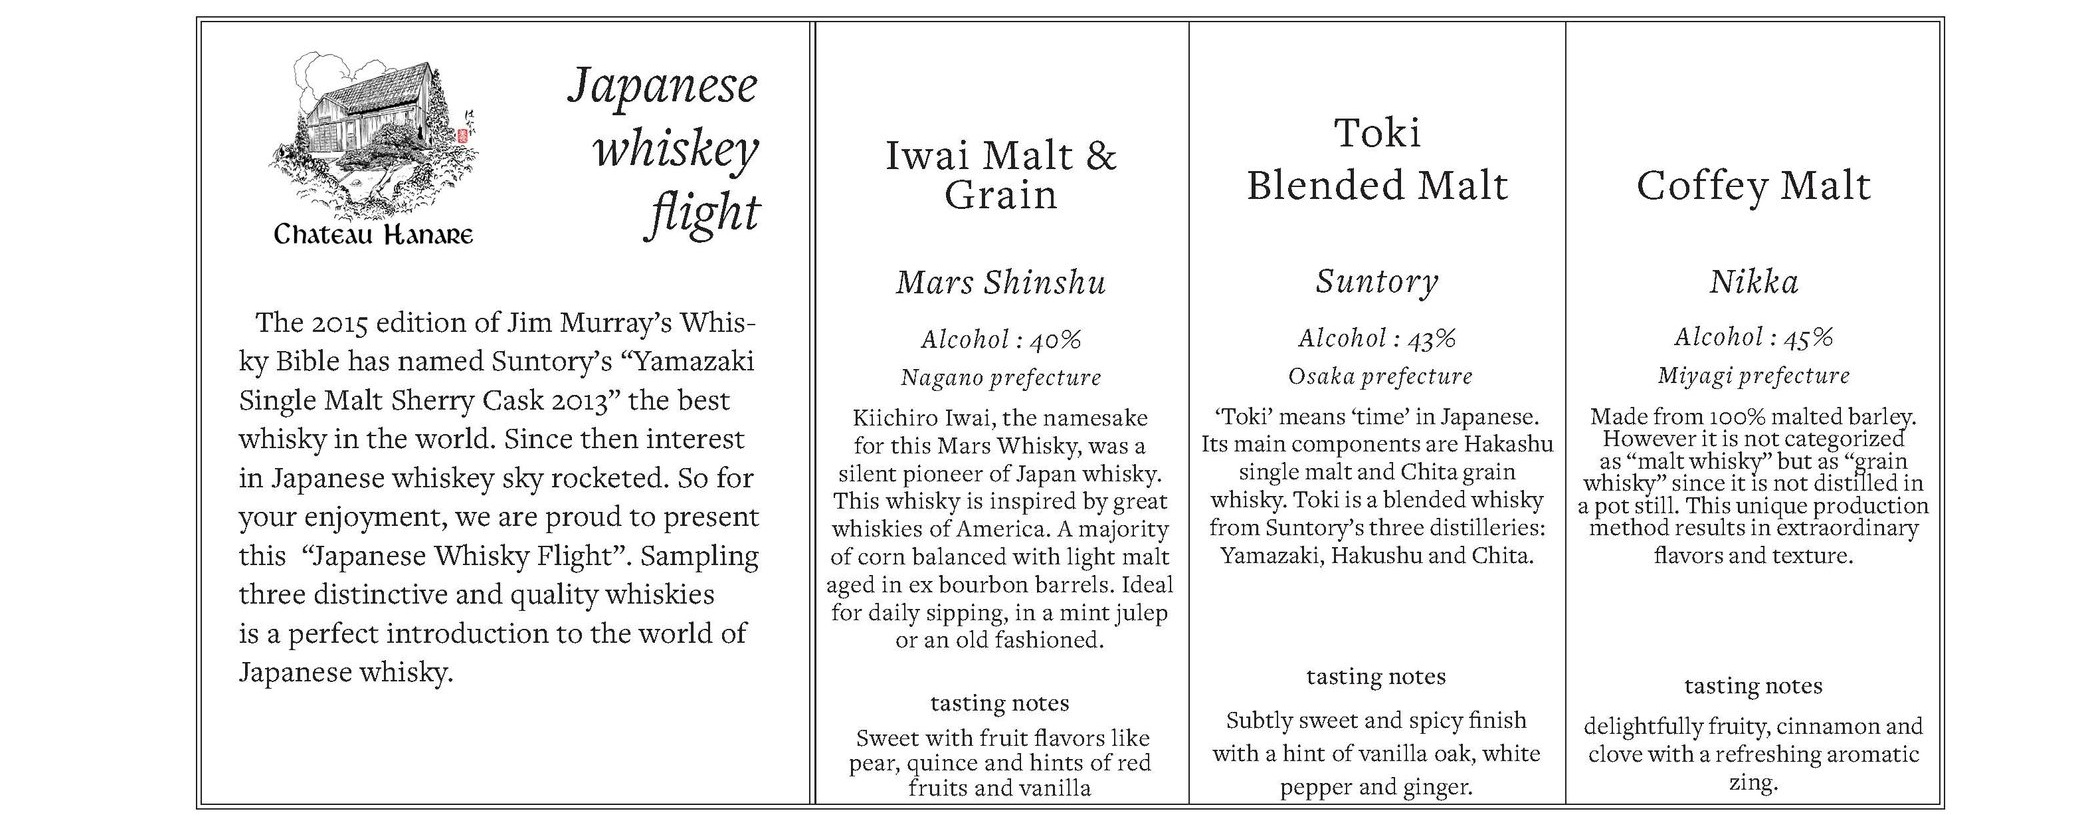 whisky+Fl+May_19_Page_1.jpg